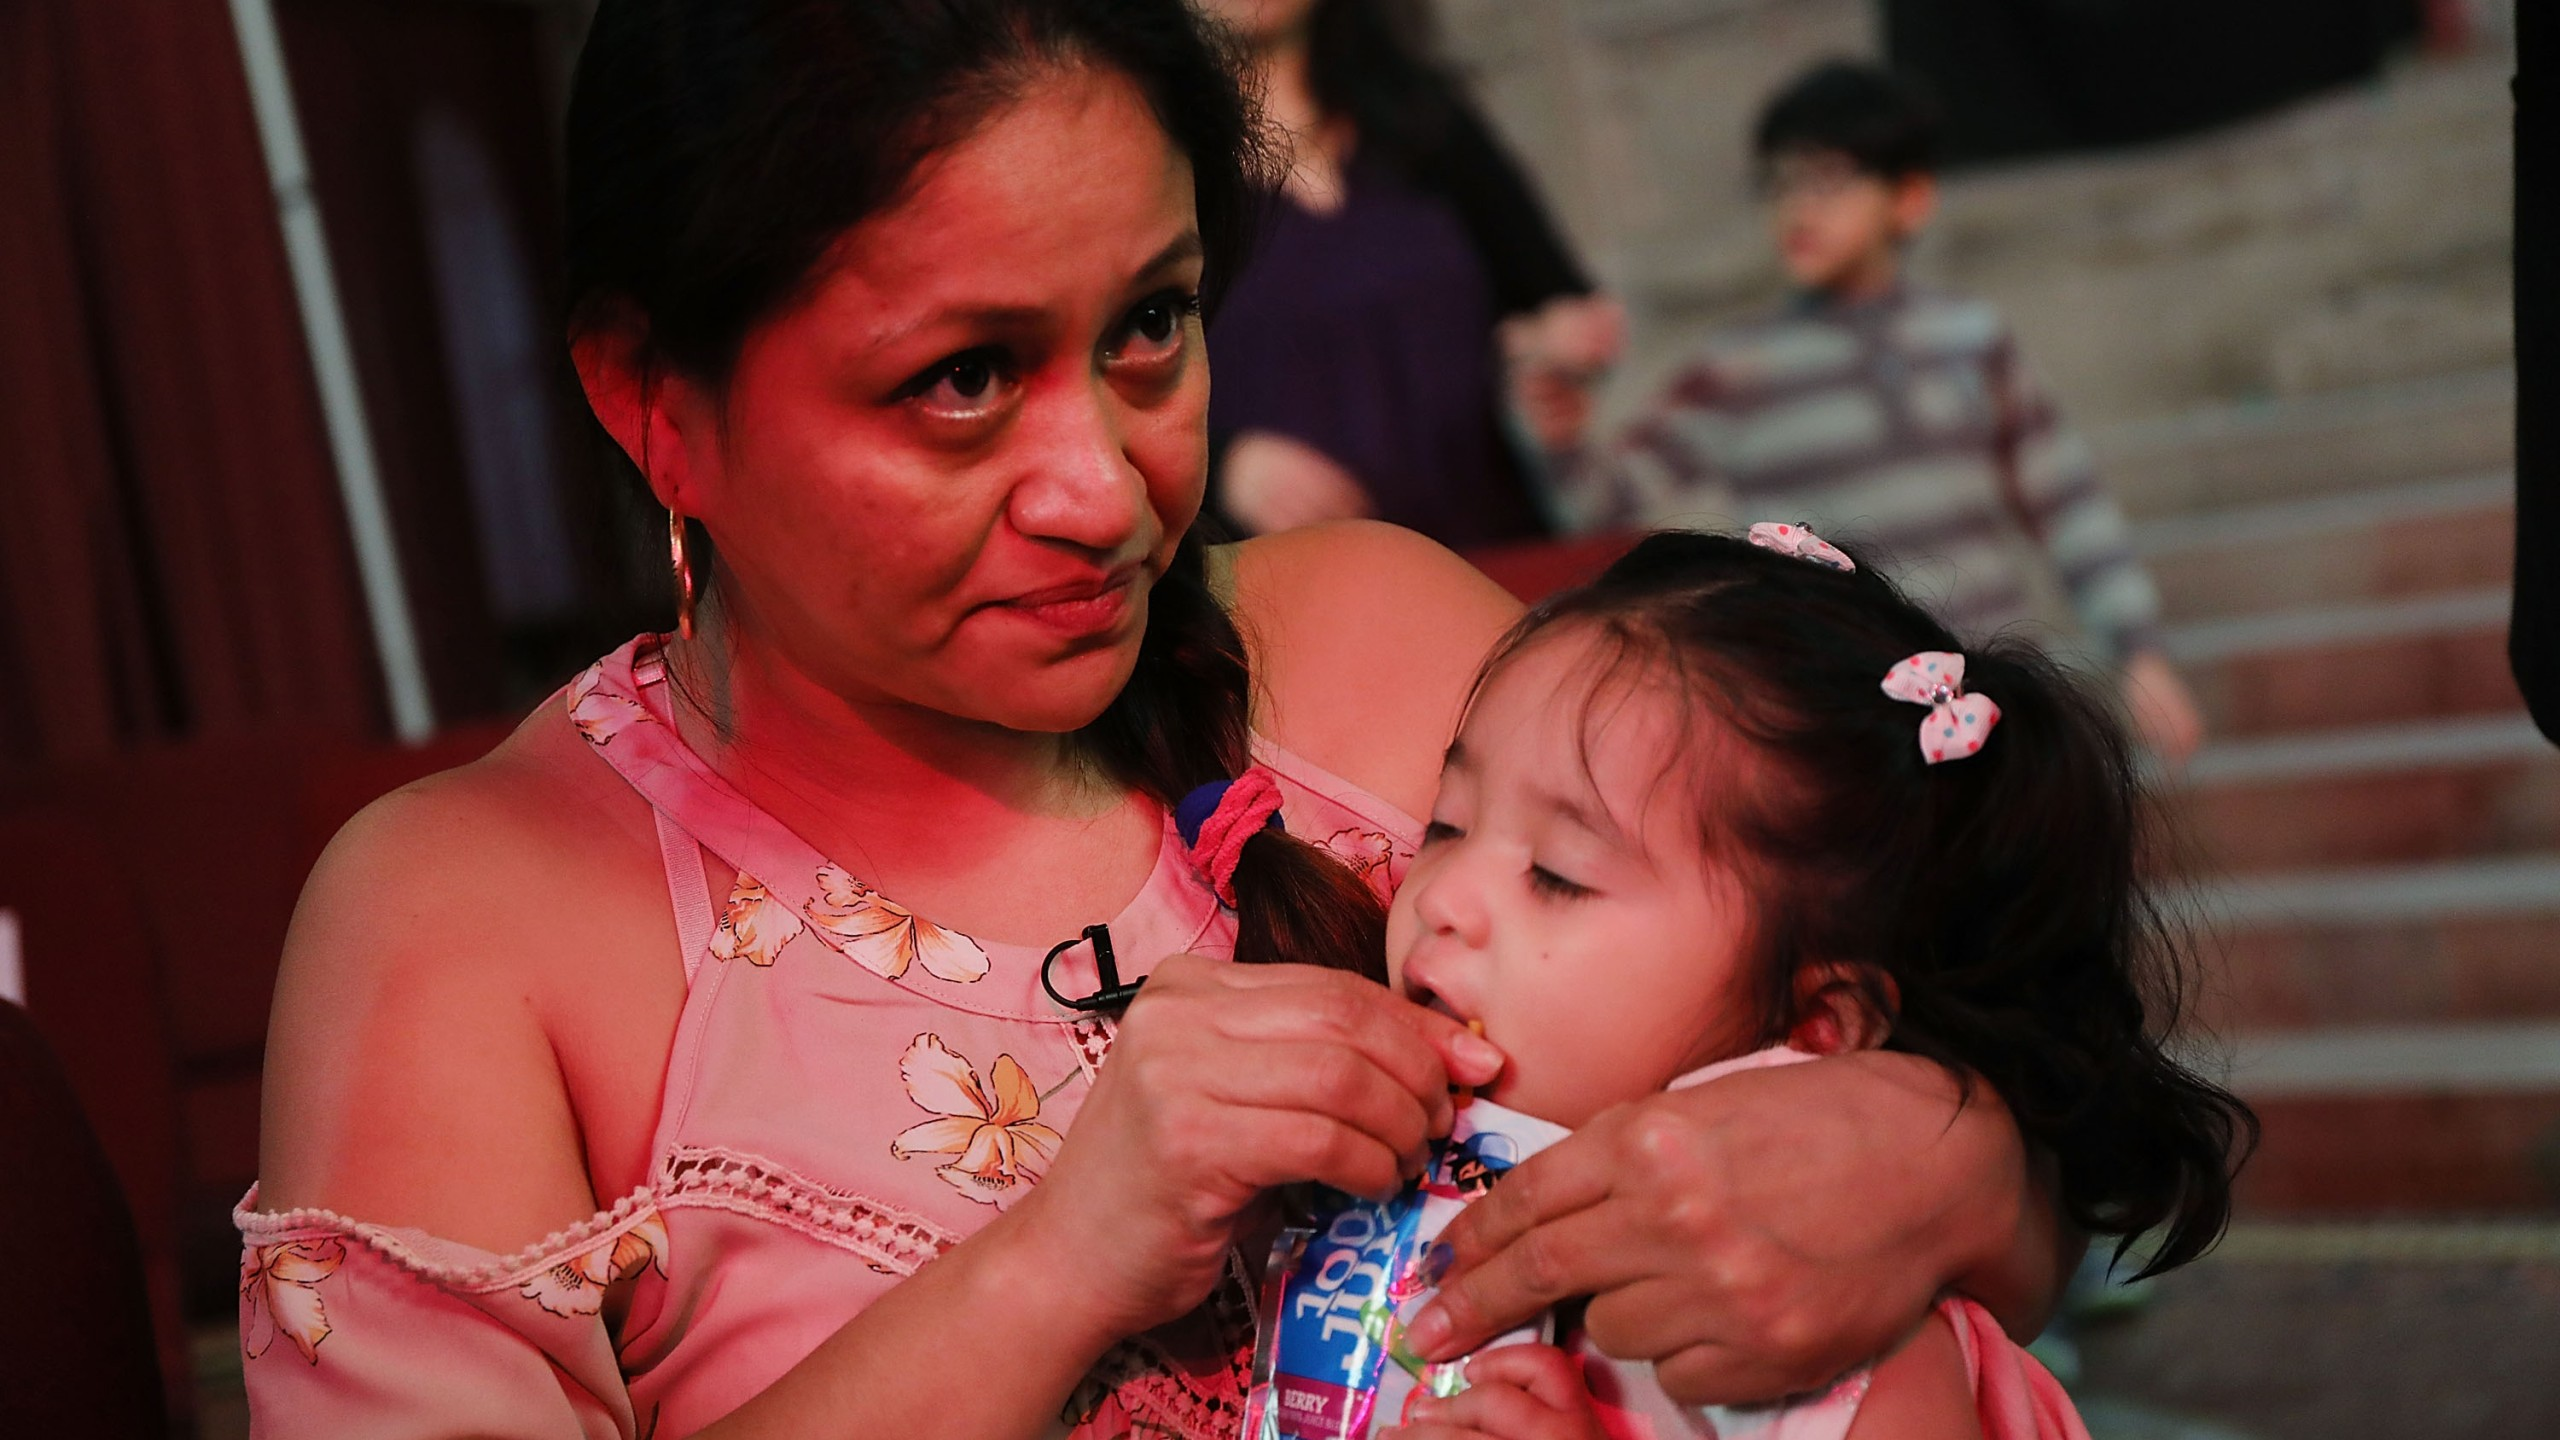 Aura Hernandez, a 37-year-old woman from Guatemala taking sanctuary in a Manhattan church, holds her 15-month-old daughter during a vigil on March 29, 2018. (Credit: Spencer Platt / Getty Images)